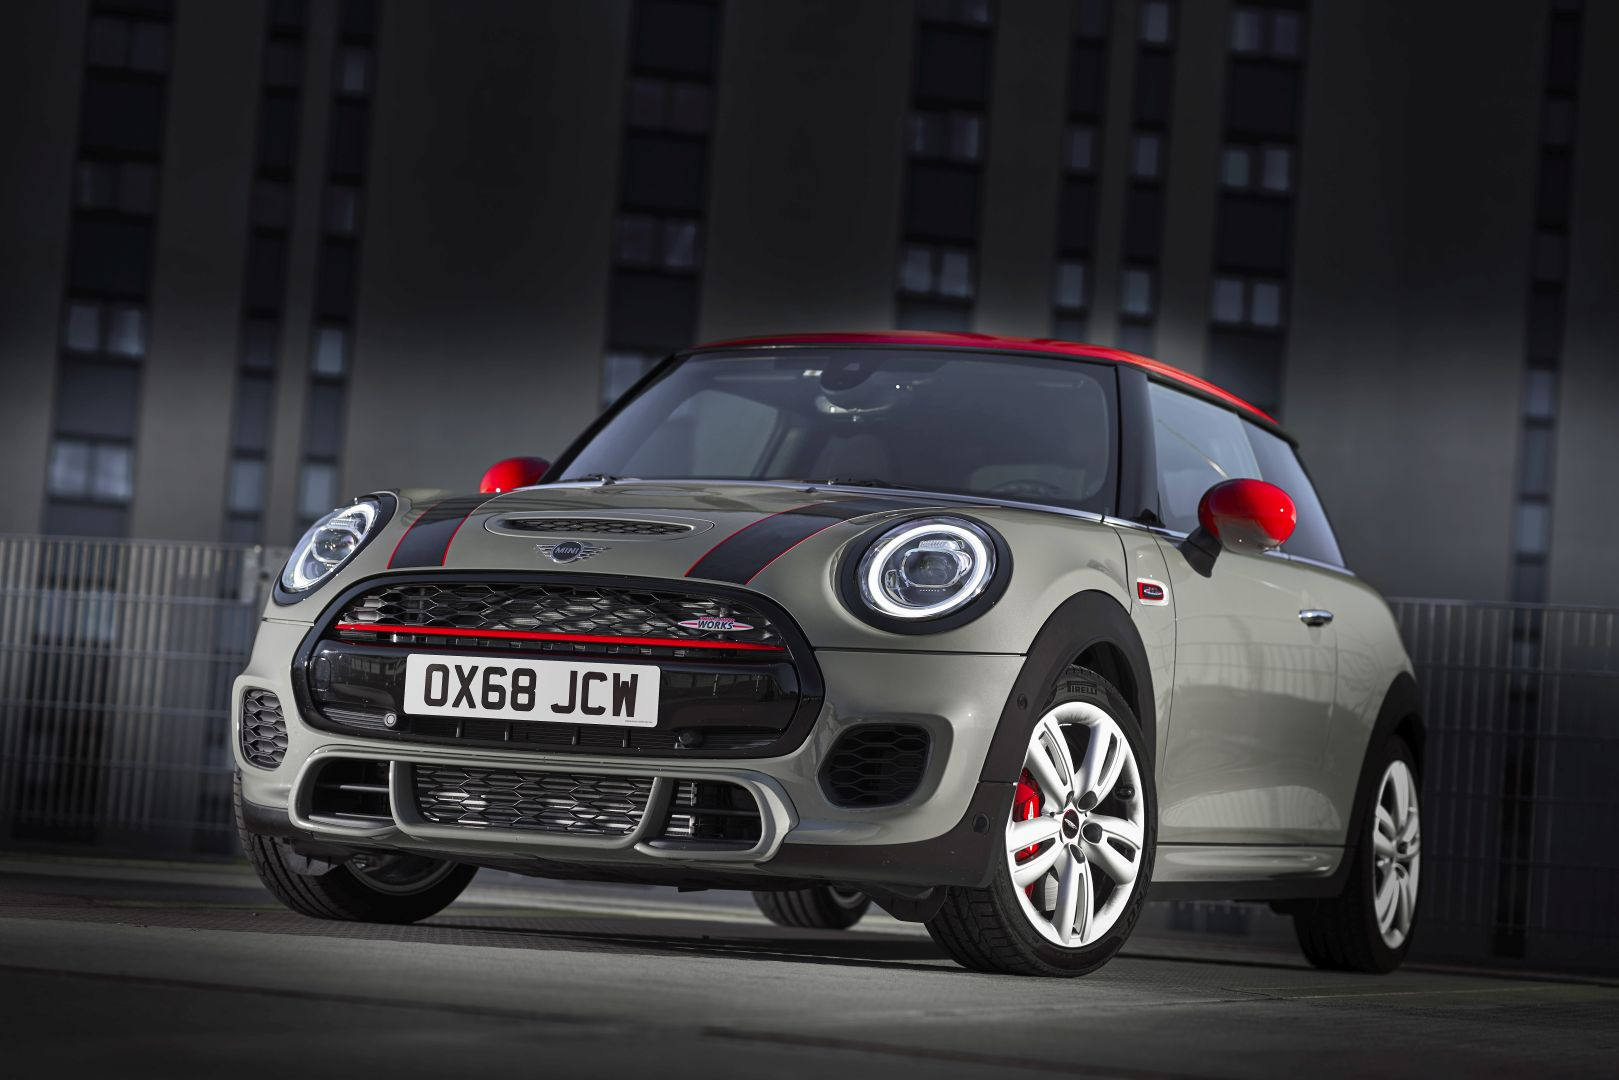 MINI JCW Facelift 2